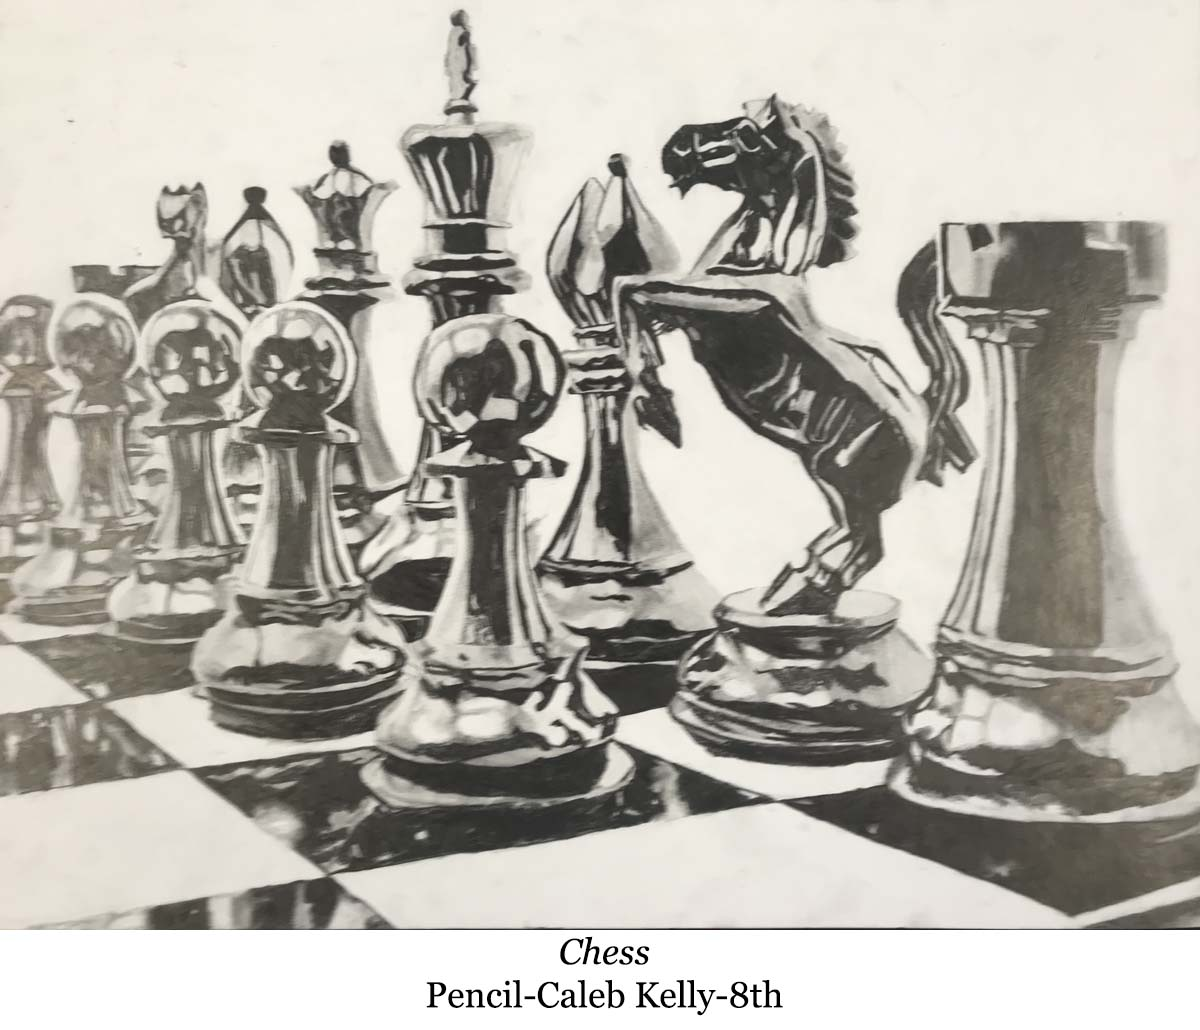 drawing of a chess board